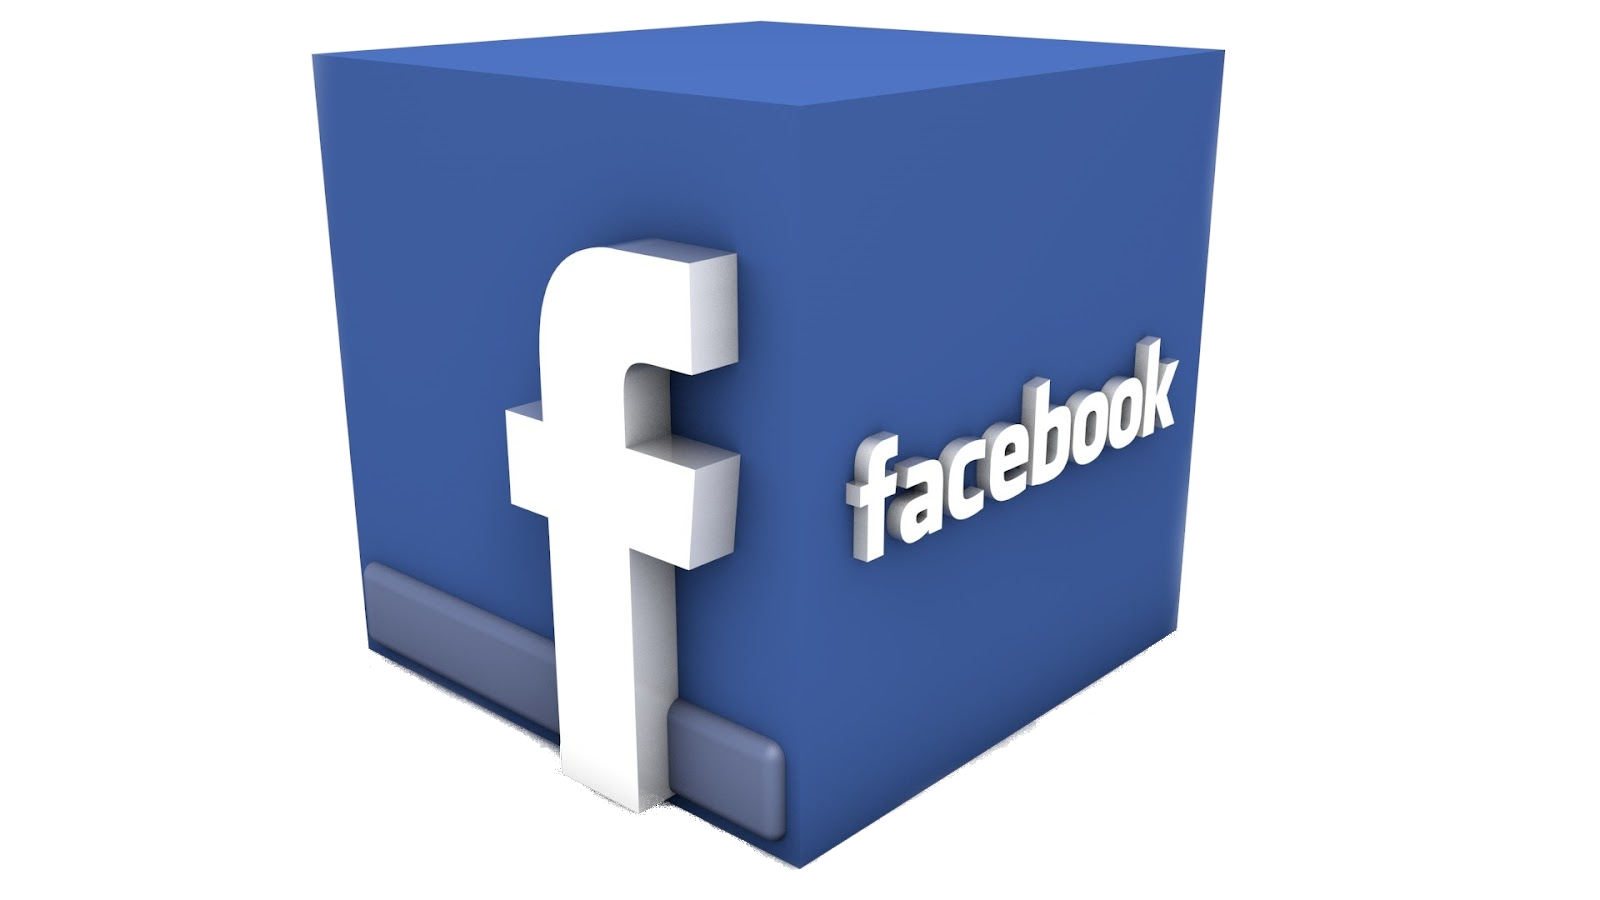 Facebook png. Logo latest fb